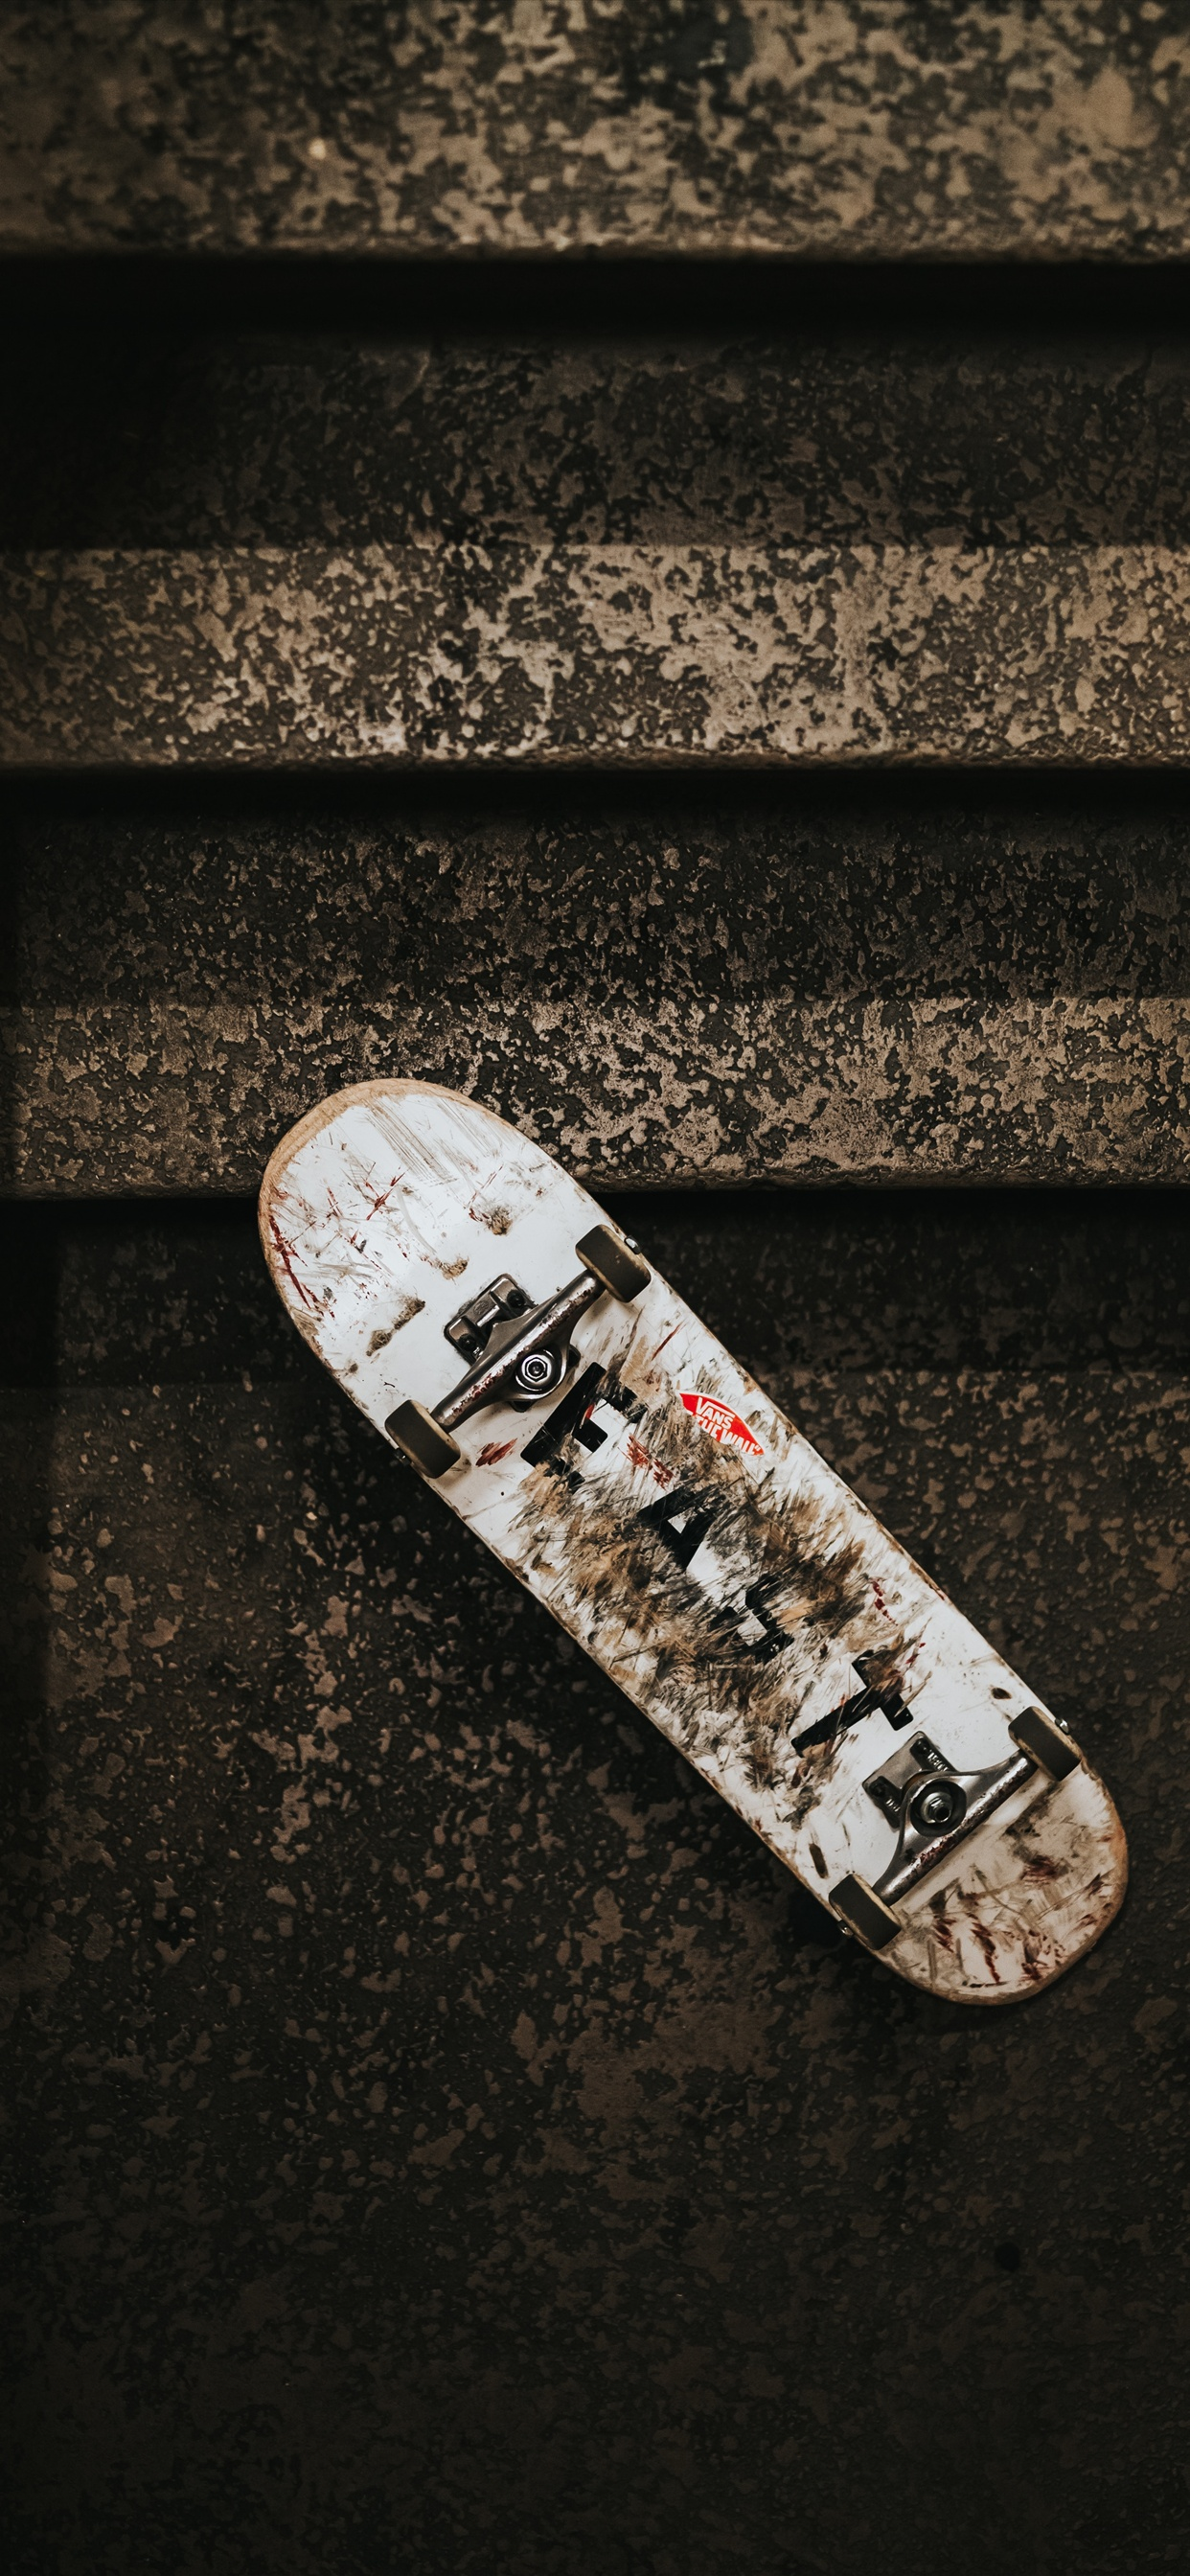 Skateboard Stairs Iphone Xs Max X 8 7 6 5 4 3gs Wallpaper